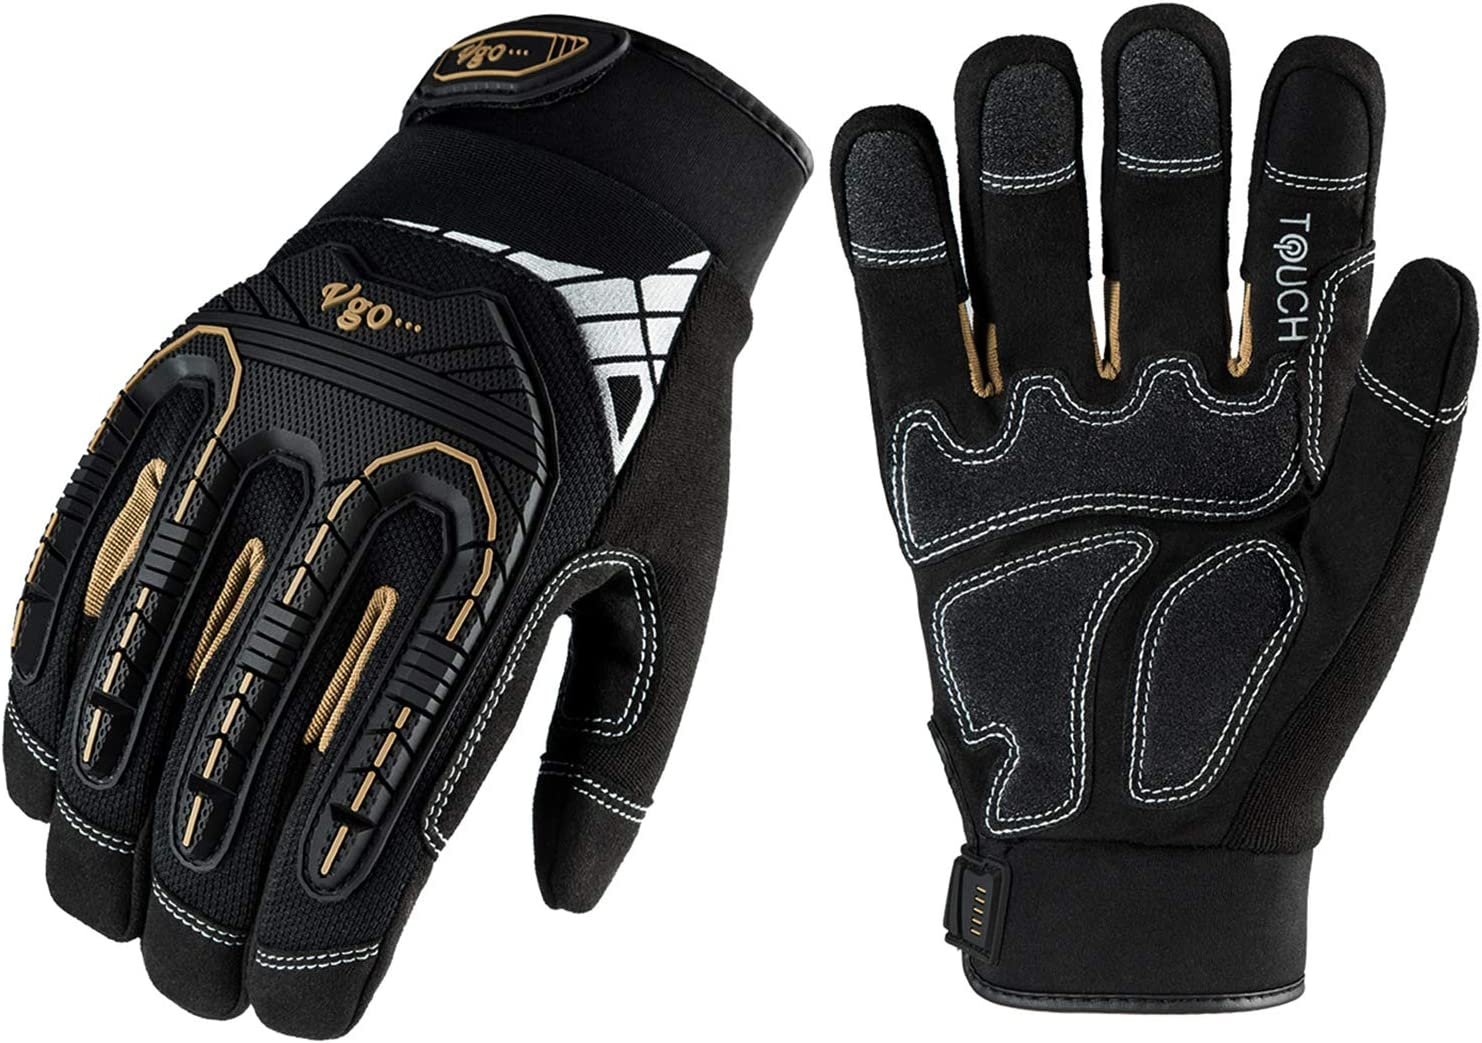 Vgo 1-Pair Heavy-Duty Synthetic Leather Work Gloves, Impact Protection Mechanic Gloves, Rigger Gloves, High Dexterity, Vibration Reduction, Touchscreen Capable (Size L, Black, SL8849) - -